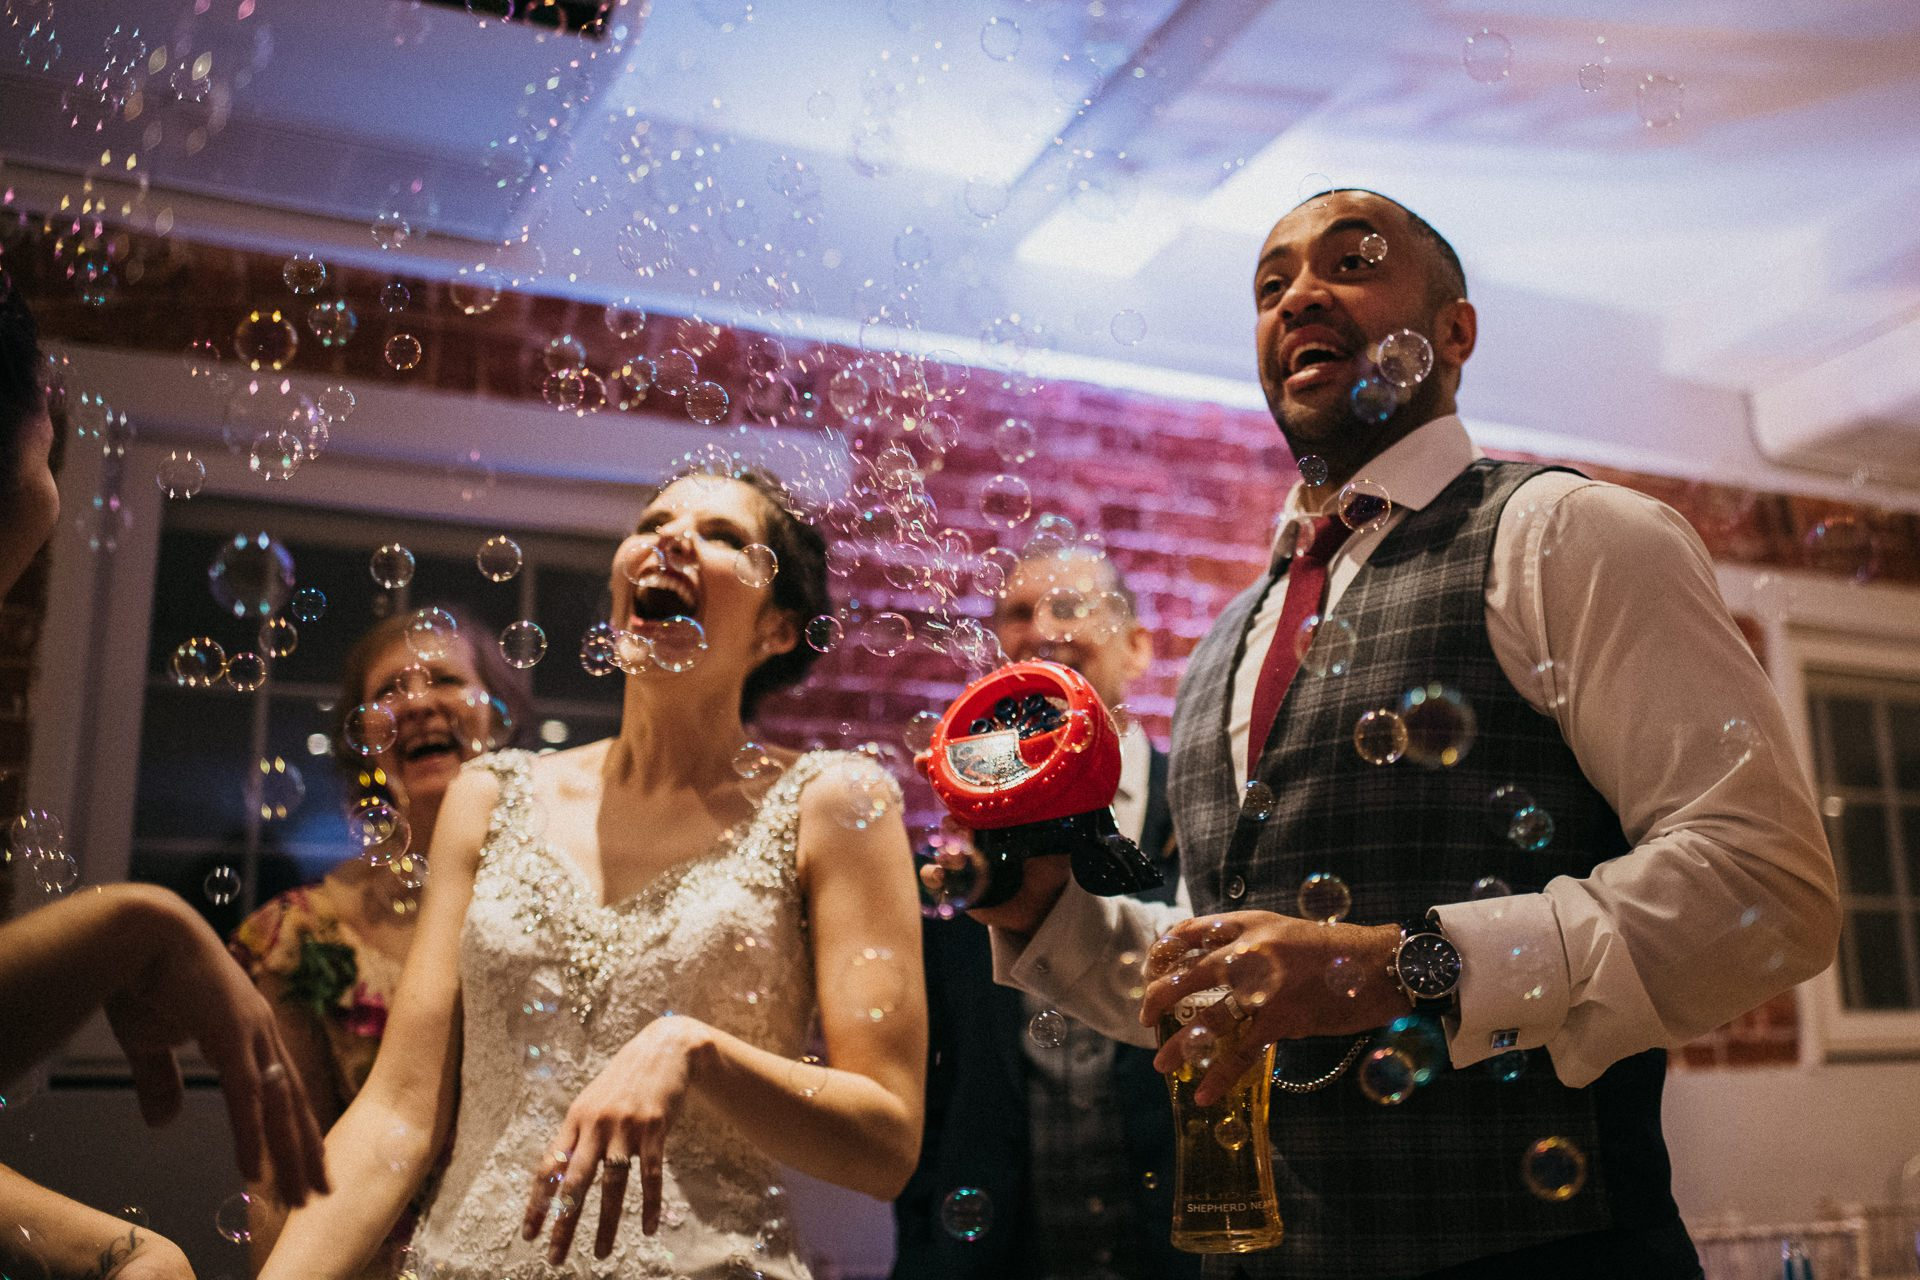 0016-DEVON-SOMERSET-WEDDING-PHOTOGRAPHER-0050-BEST-OF-2019-LOUISE-MAY-DEVON-SOMERSET-WEDDING-PHOTOGRAPHY-LM1_2068